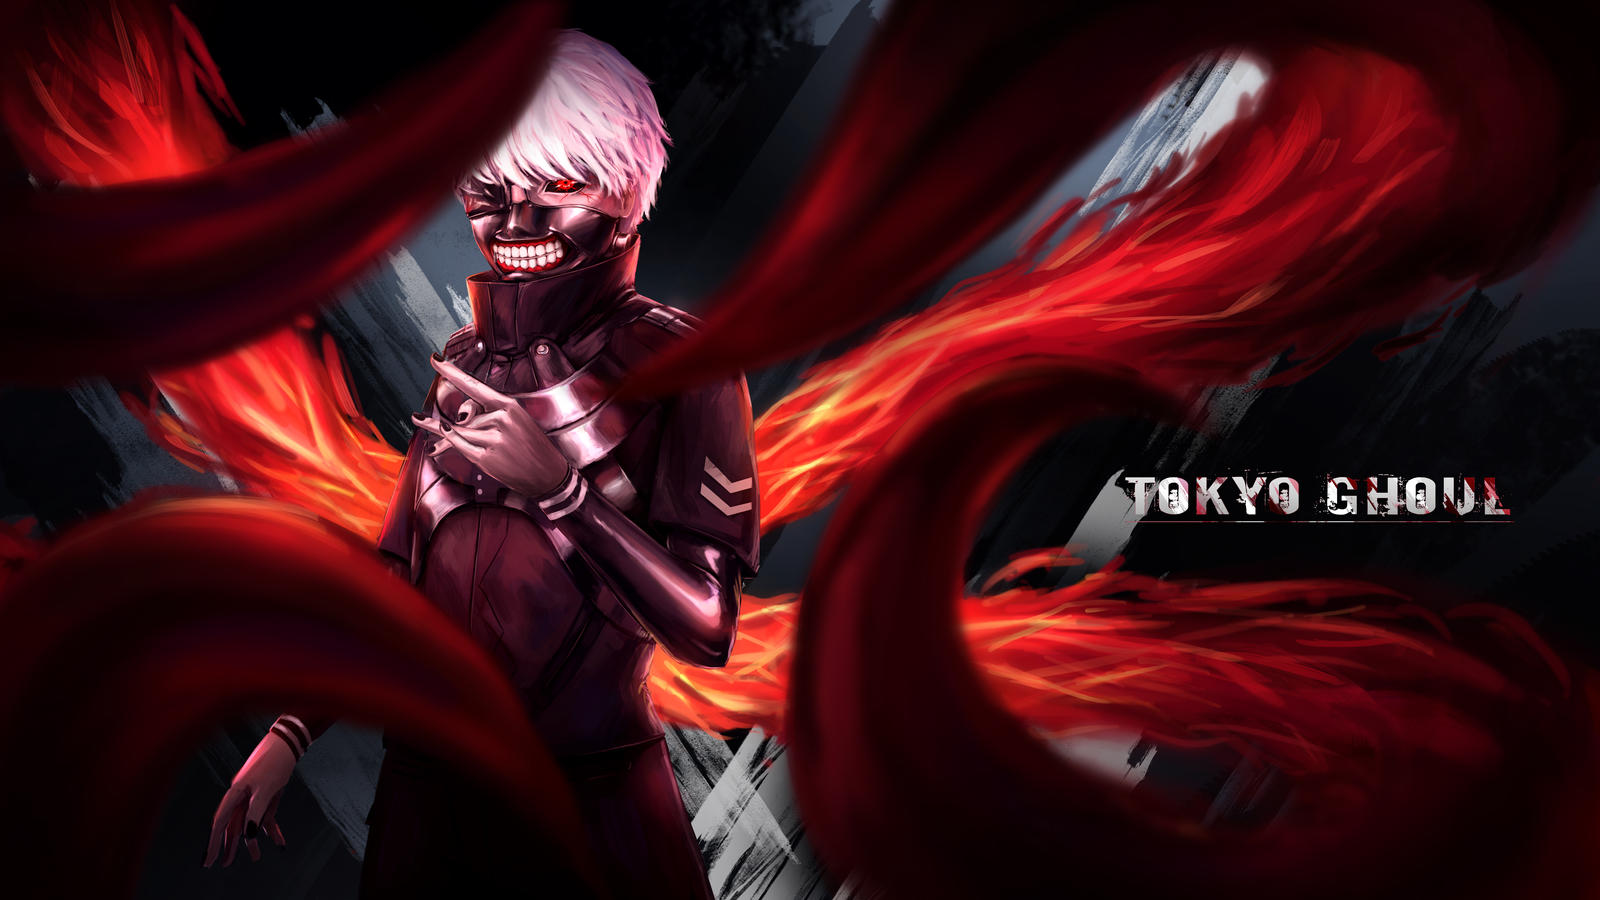 1000 images about tokyo ghoul on pinterest - Tokyo ghoul wallpaper computer ...